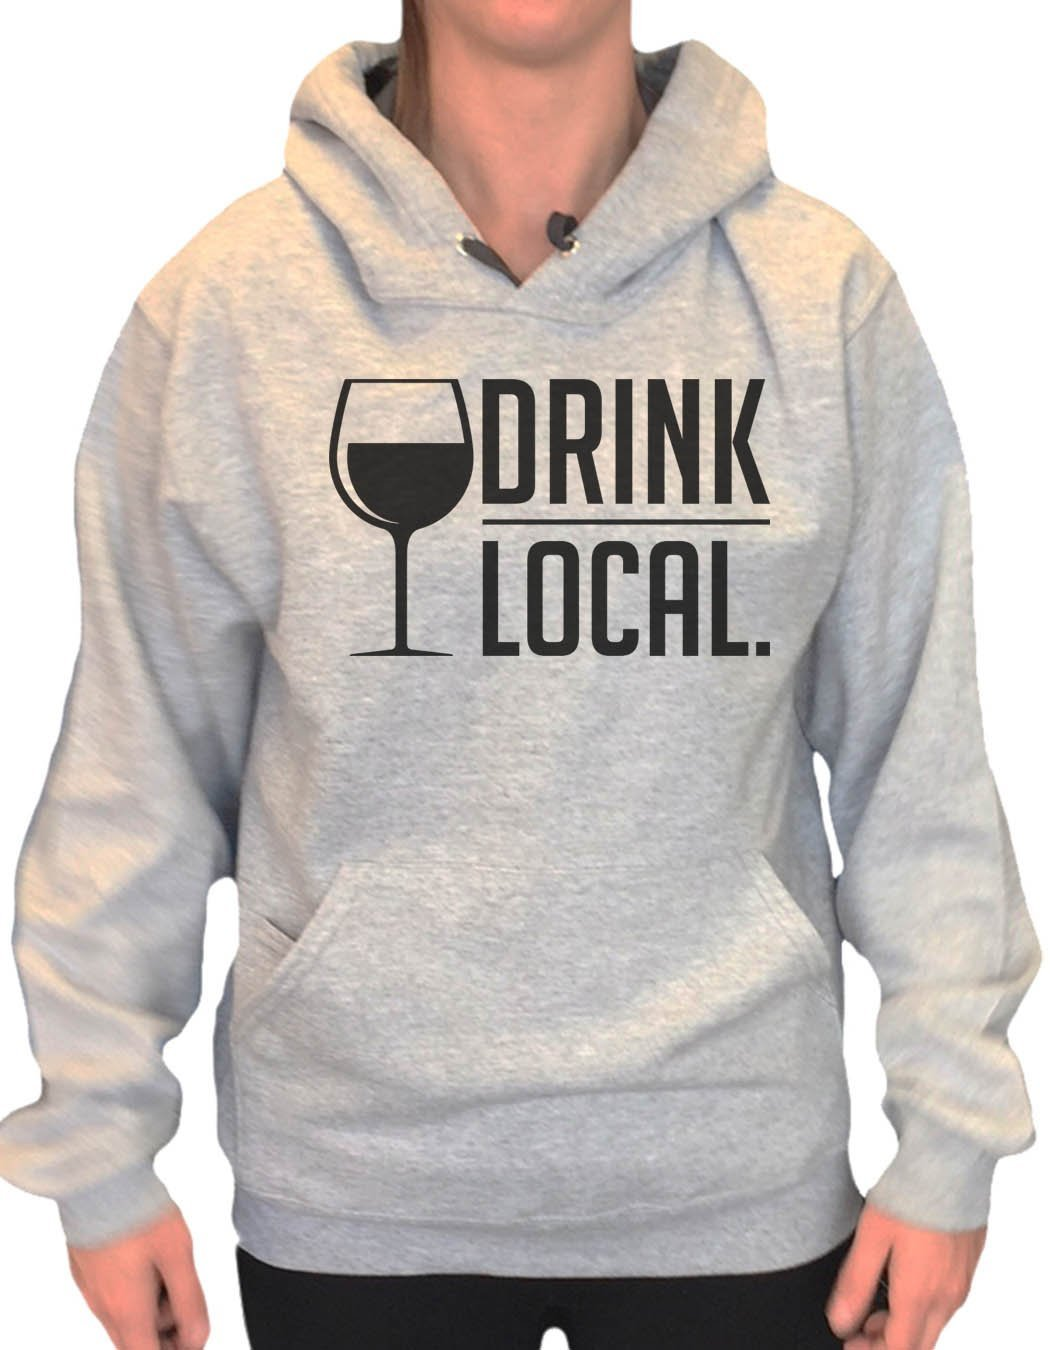 UNISEX HOODIE - Drink Local. - FUNNY MENS AND WOMENS HOODED SWEATSHIRTS - 2157 Funny Shirt